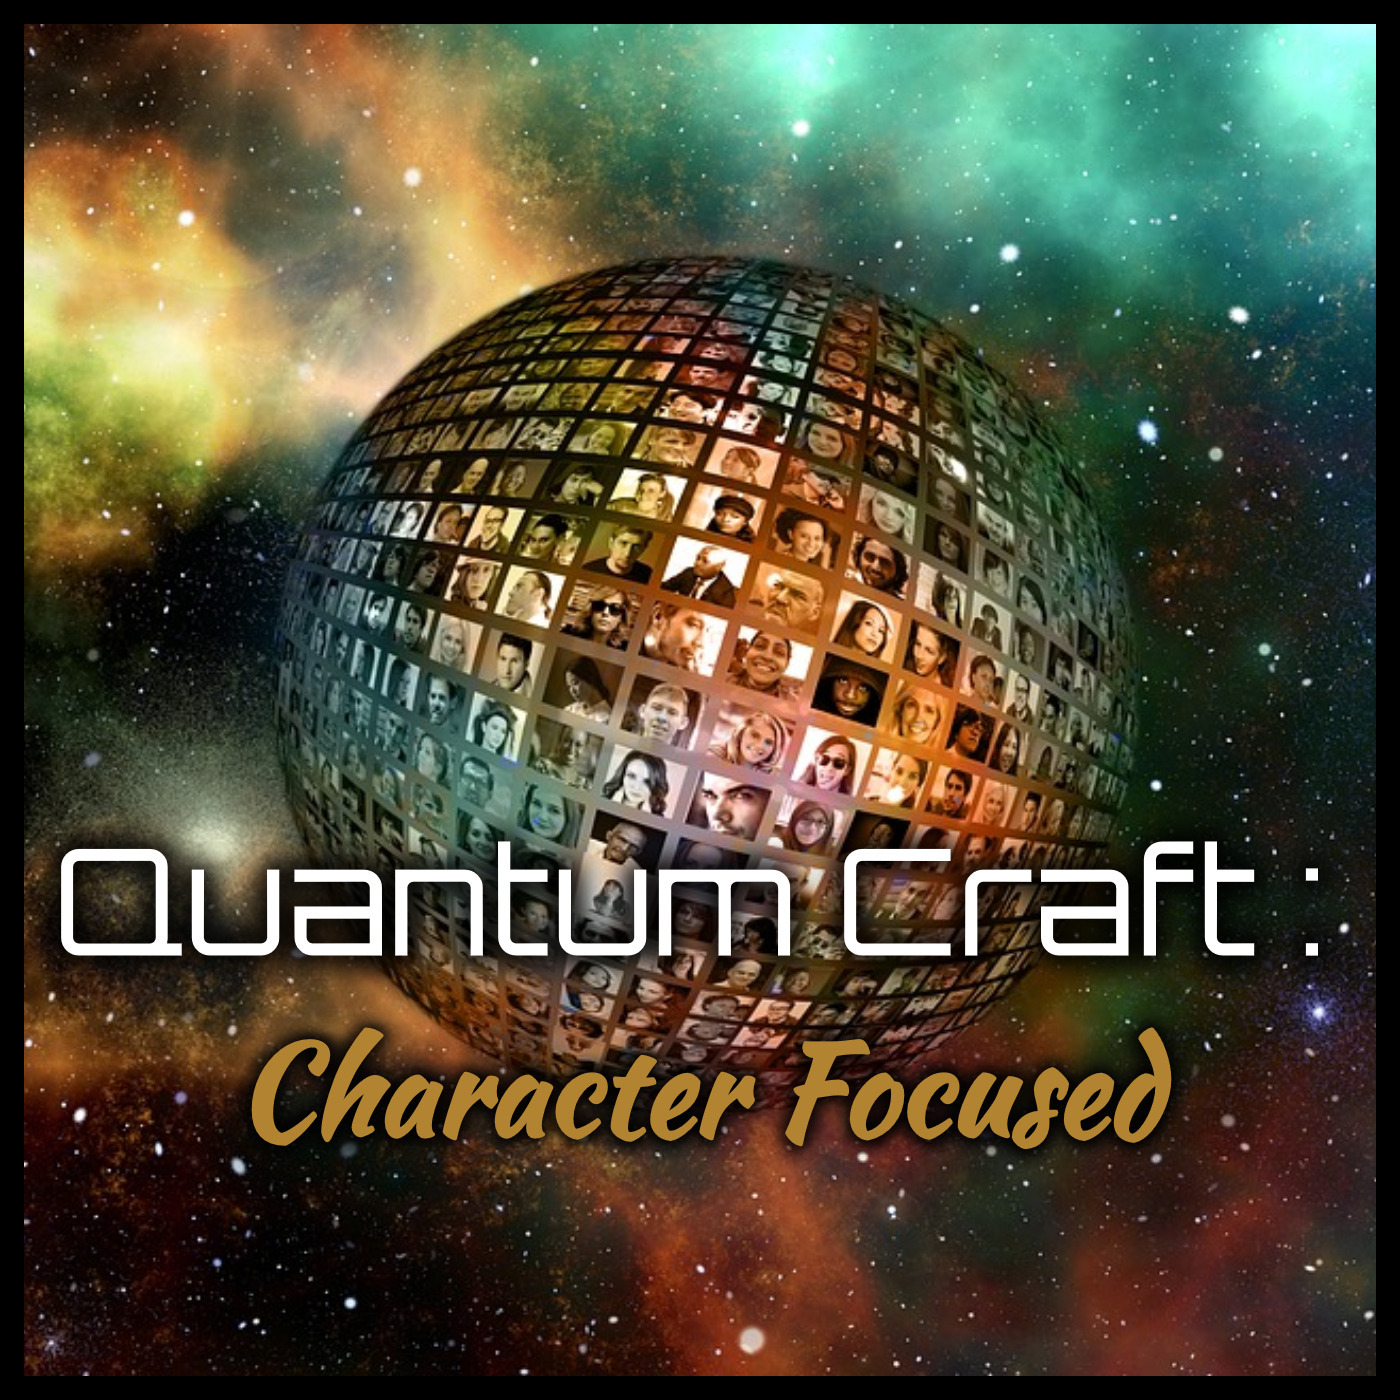 Quantum Craft: Character Focused